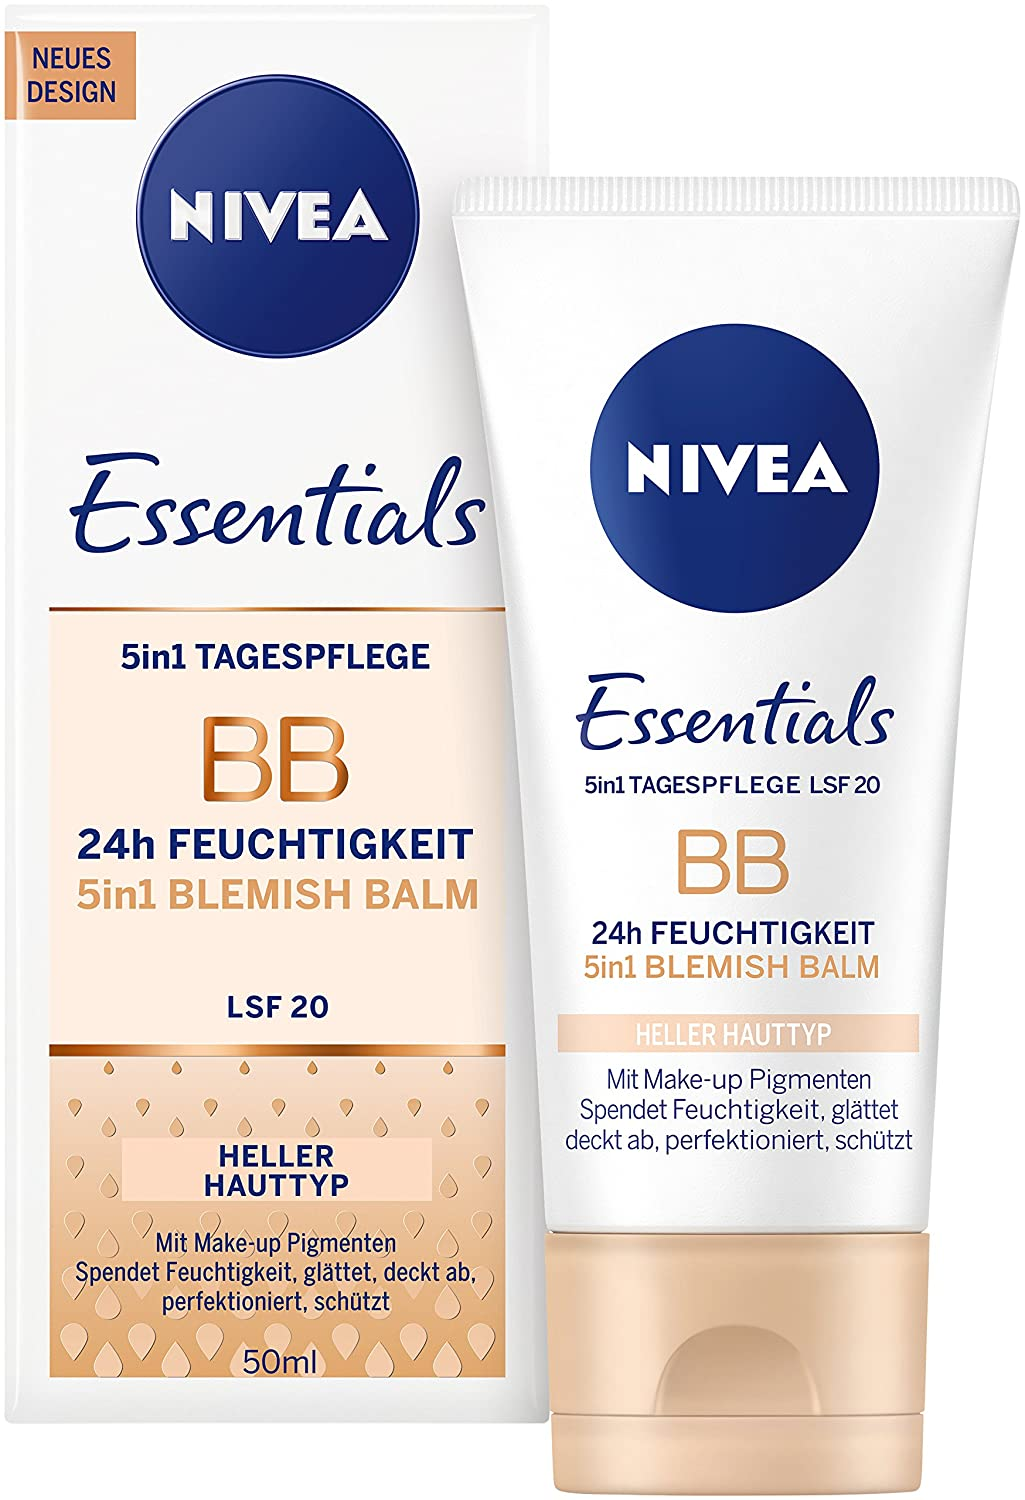 Nivea Daily Essentials BB Cream 5-in-1 Beautifying Moisturiser Light SPF 10, 50ml, Pack of 1 Beiersdorf UK Ltd 82333